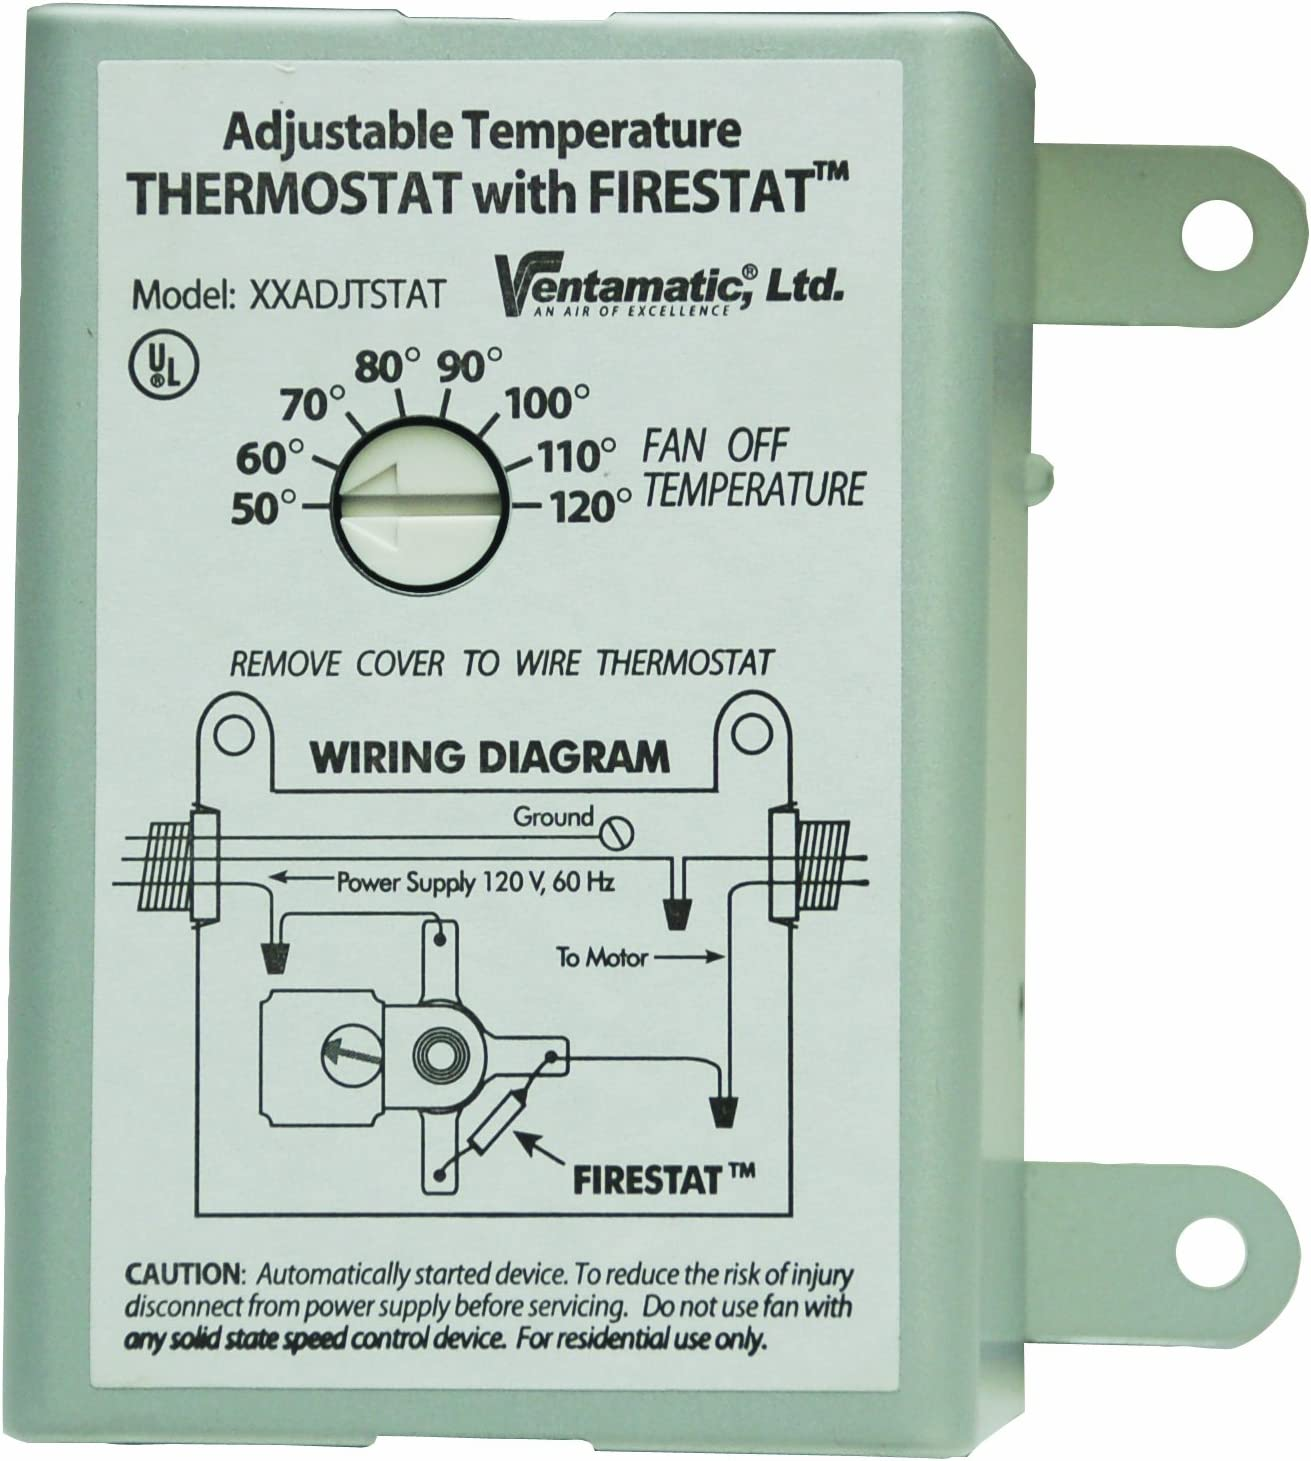 Ventamatic XXFIRESTAT 10-Amp Adjustable Programmable Thermostat with Firestat for Power Attic Ventilators, Replacement Thermostat